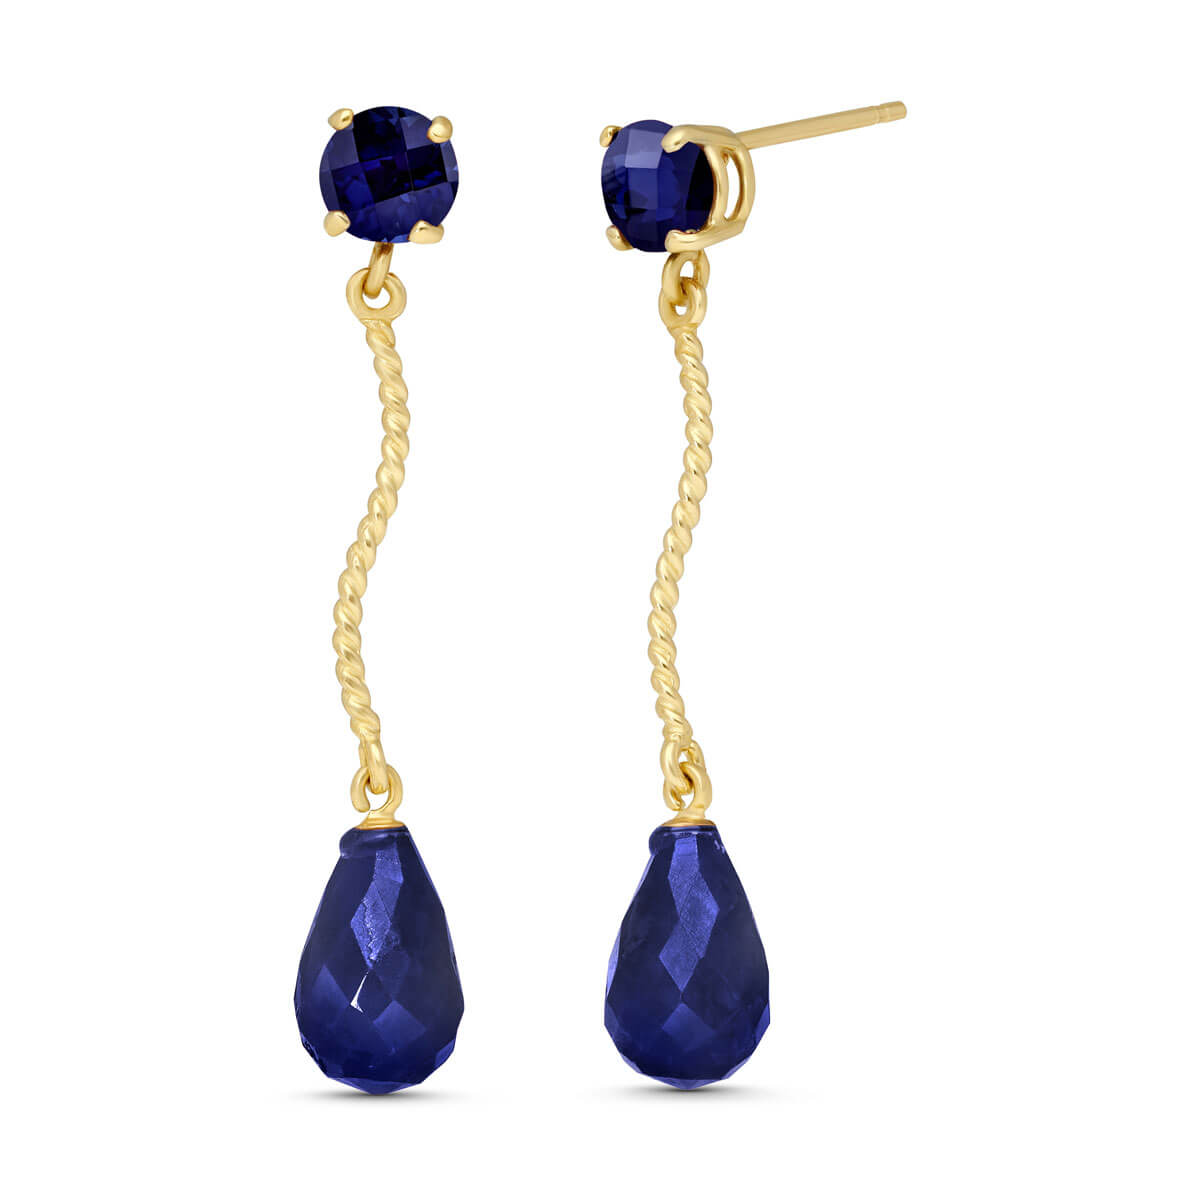 Sapphire Lure Drop Earrings 7.9 ctw in 9ct Gold